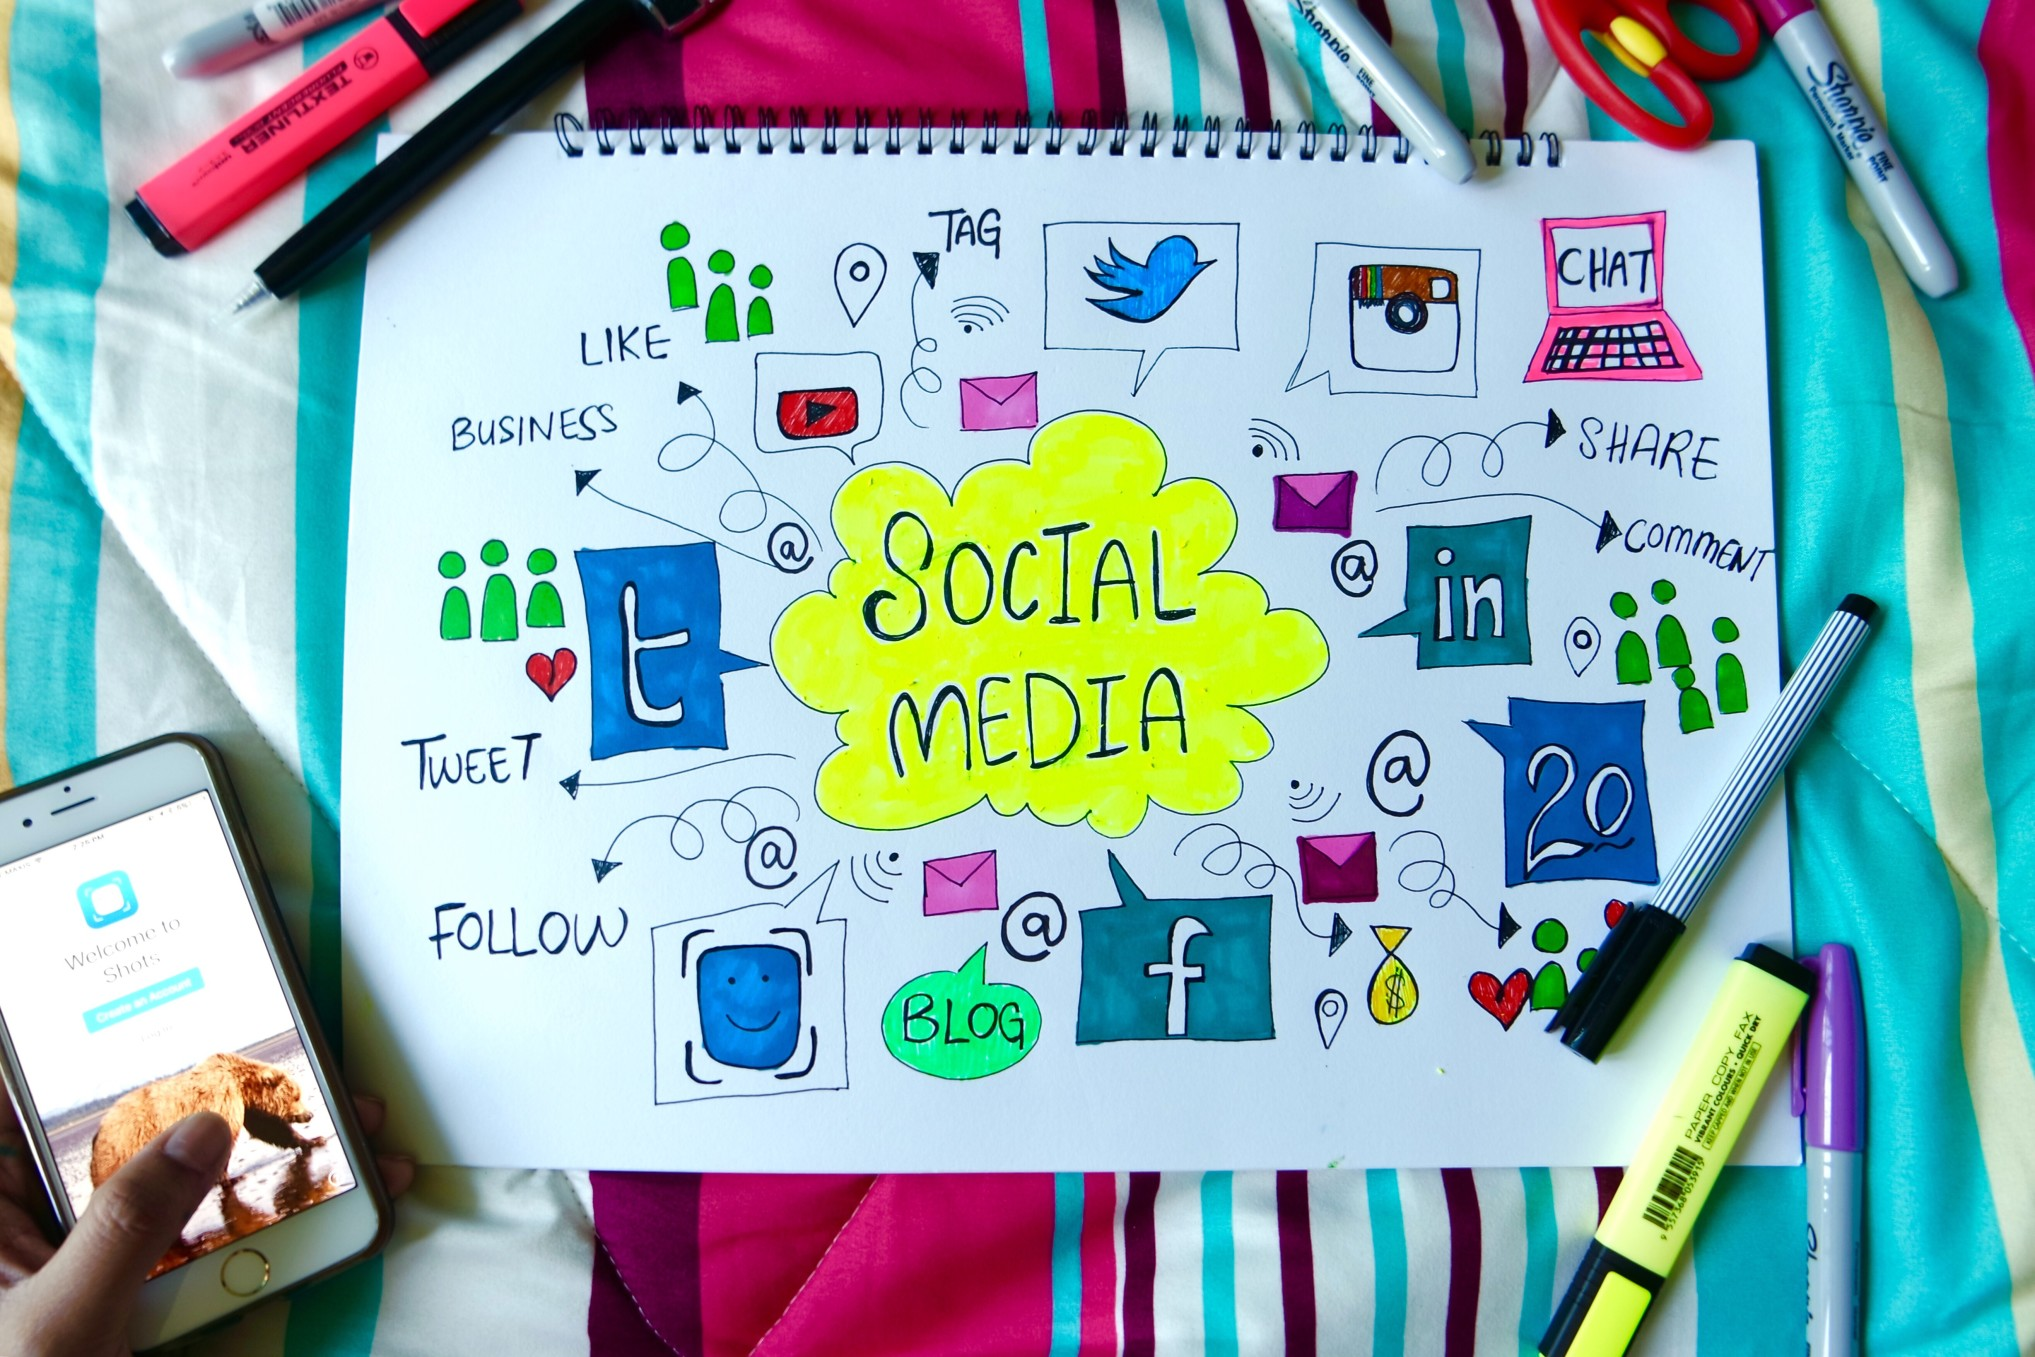 An effective social media engagement strategy needs to complement an influencer's writing efforts